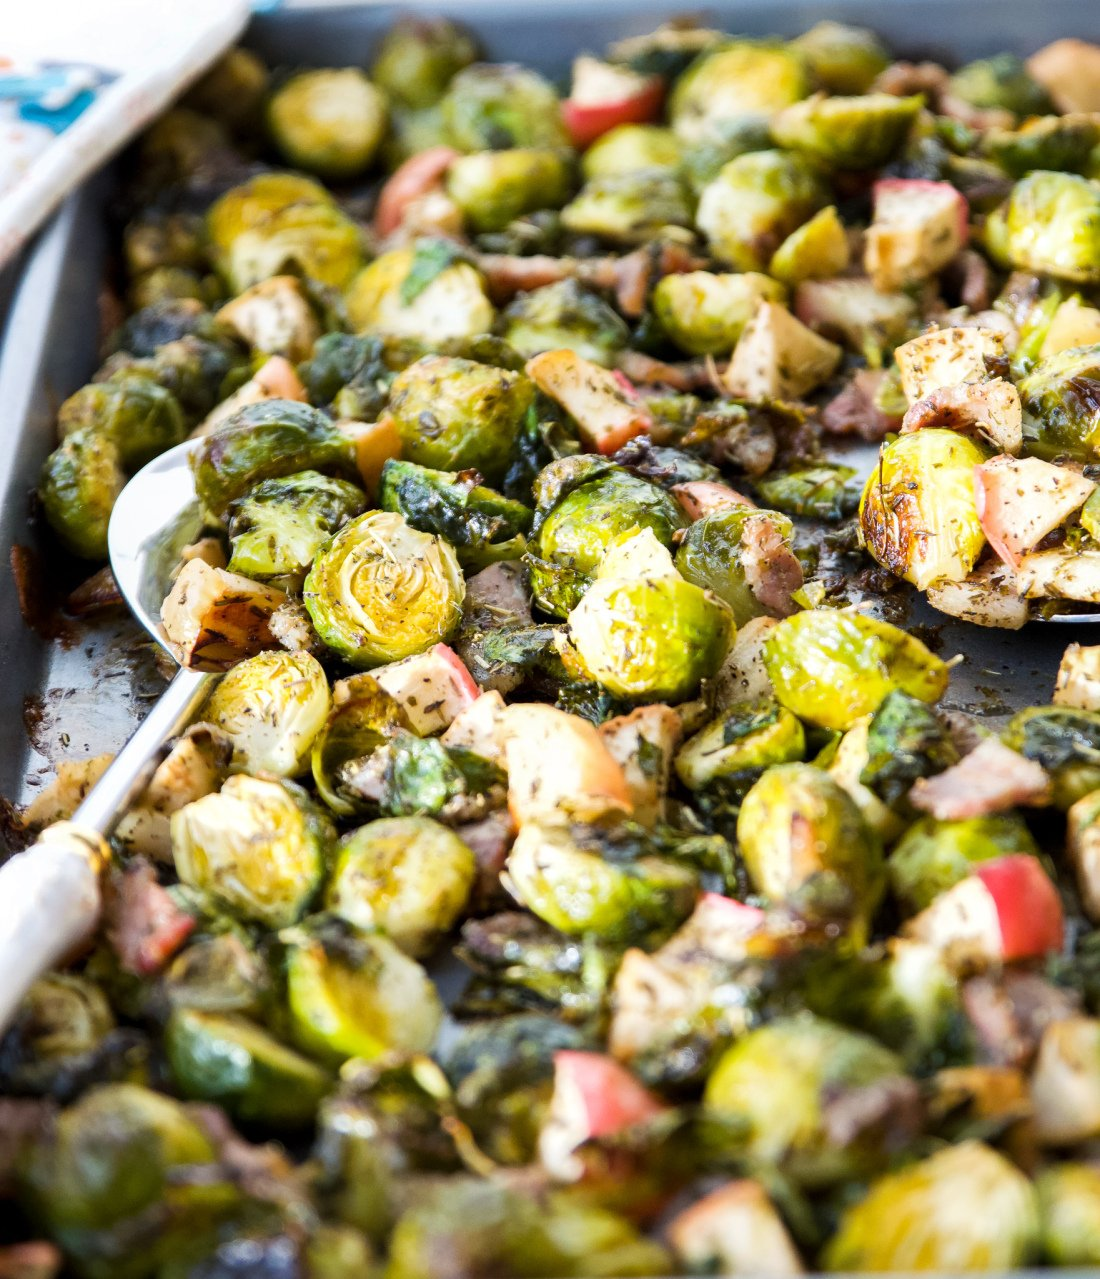 A pan of roasted Brussels sprouts with bacon and apples